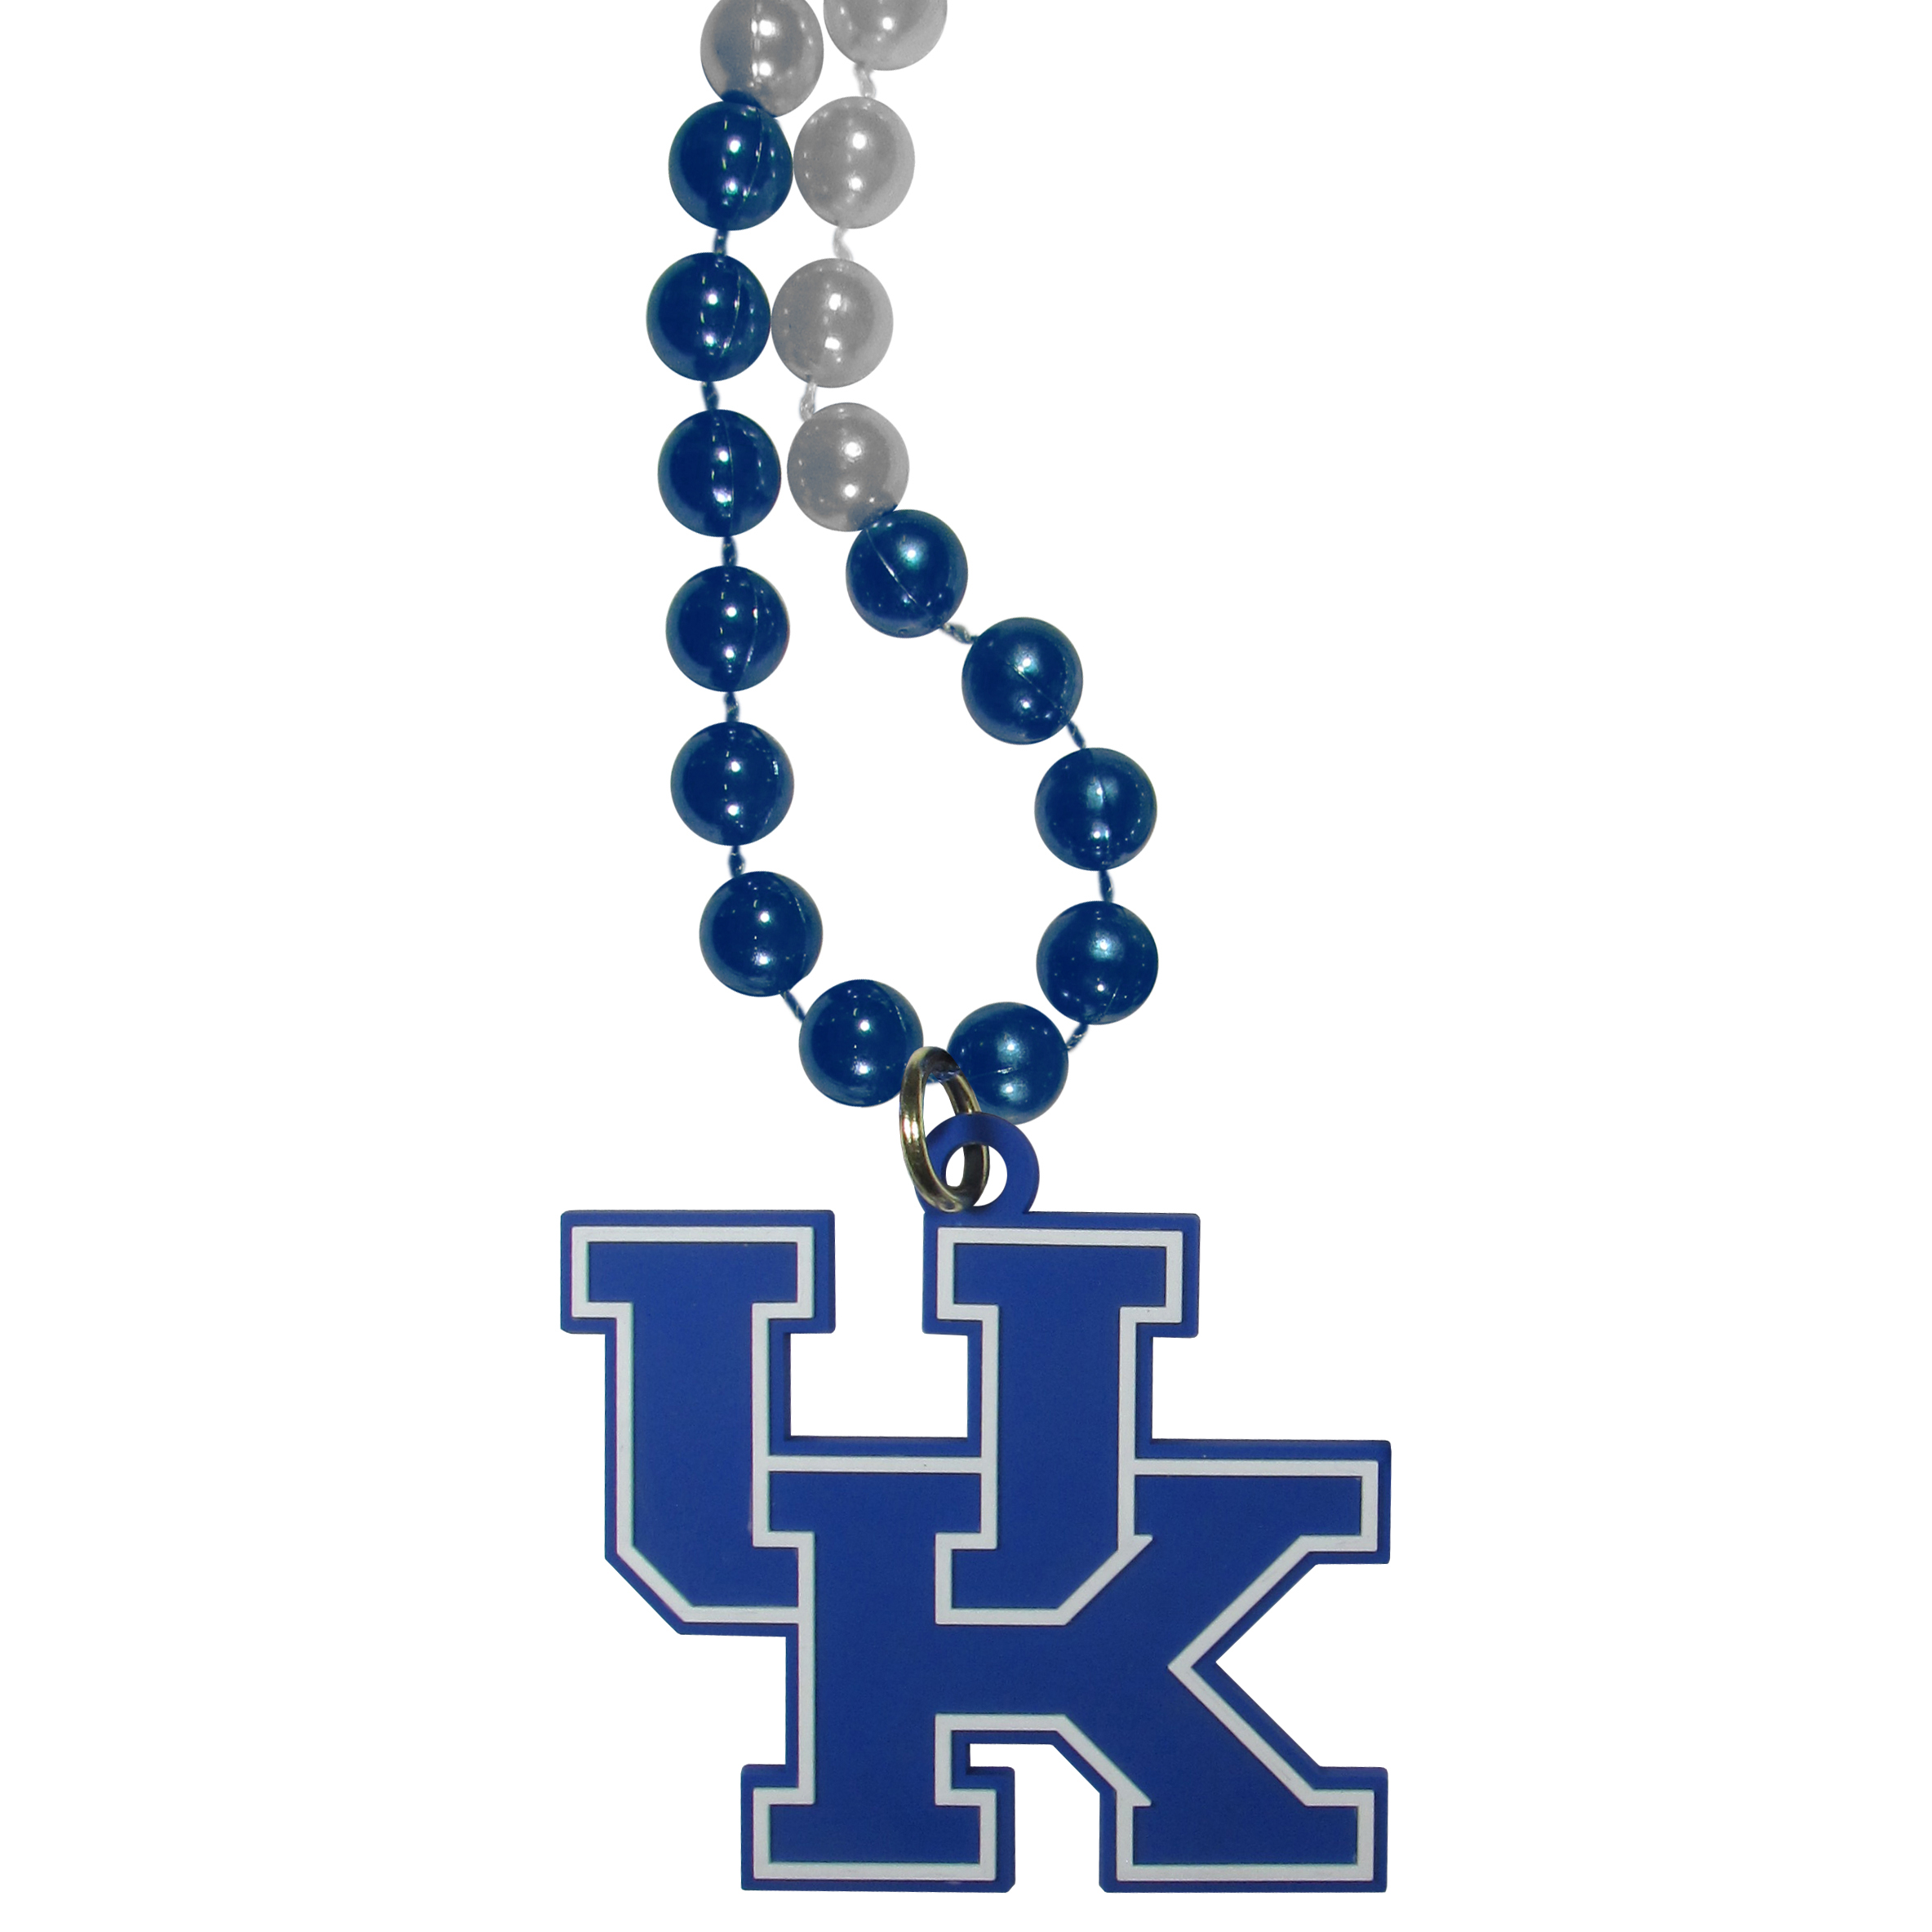 Kentucky Wildcats Mardi Gras Necklace - Get the party started with this Mardi Gras inspired bead necklace. The flashy beads have a shiny finish and come in bright team colors strung together on a 36 inch string so you can make a big statement on game day! The beads come with an extra large flexible team logo that is a full 3 inches at its widest point. This trendy and bold necklace screams out your Kentucky Wildcats pride and is a must have at game time!